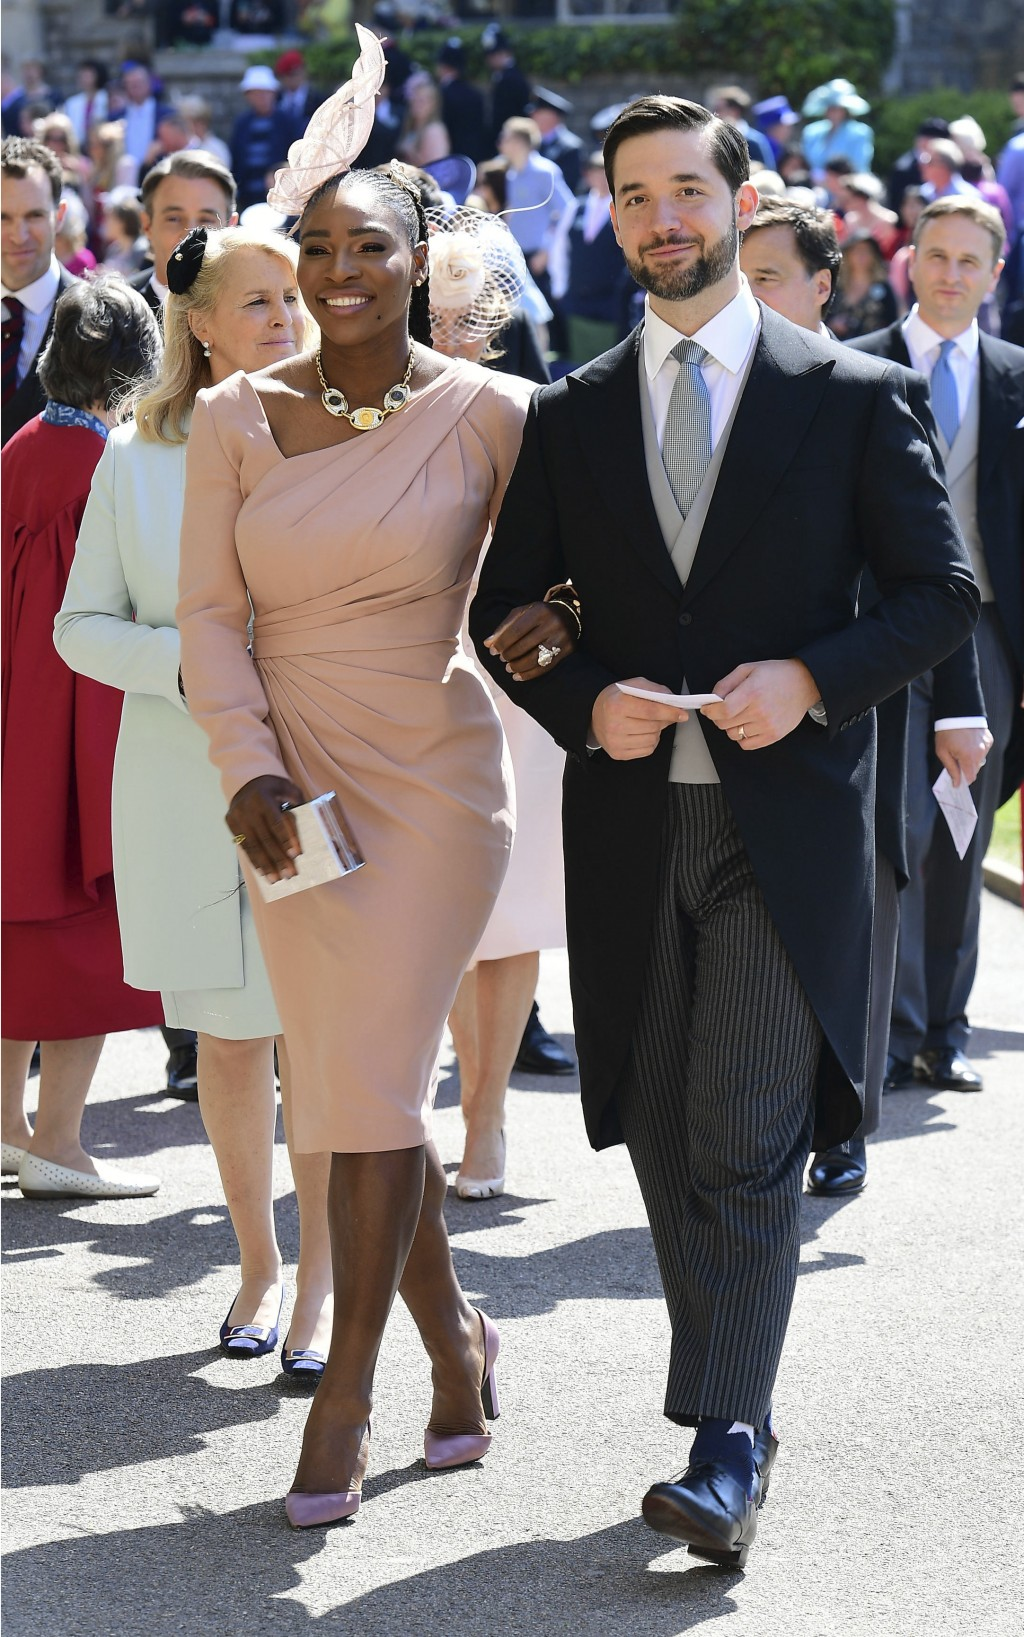 FILE - In this May 19, 2018, file photo, Serena Williams and her husband Alexis Ohanian arrive for the wedding ceremony of Prince Harry and Meghan Mar